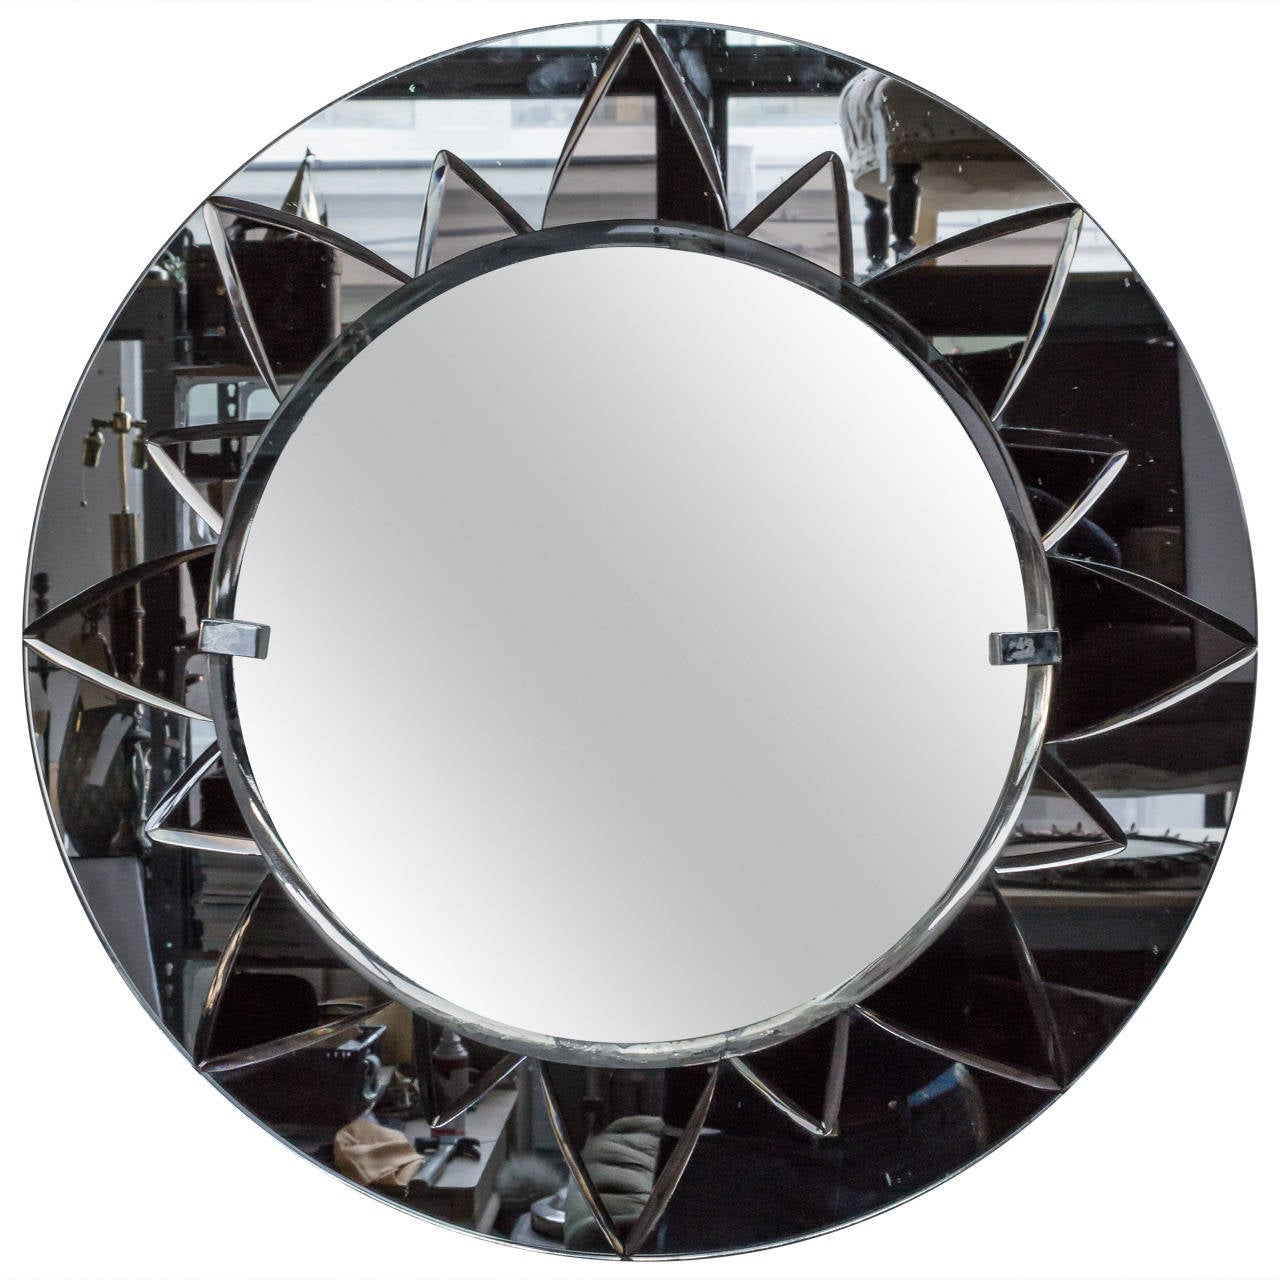 Art Deco Style Mirror Unusual Art Deco Style Mirror With Rose Mirror Sunburst Design